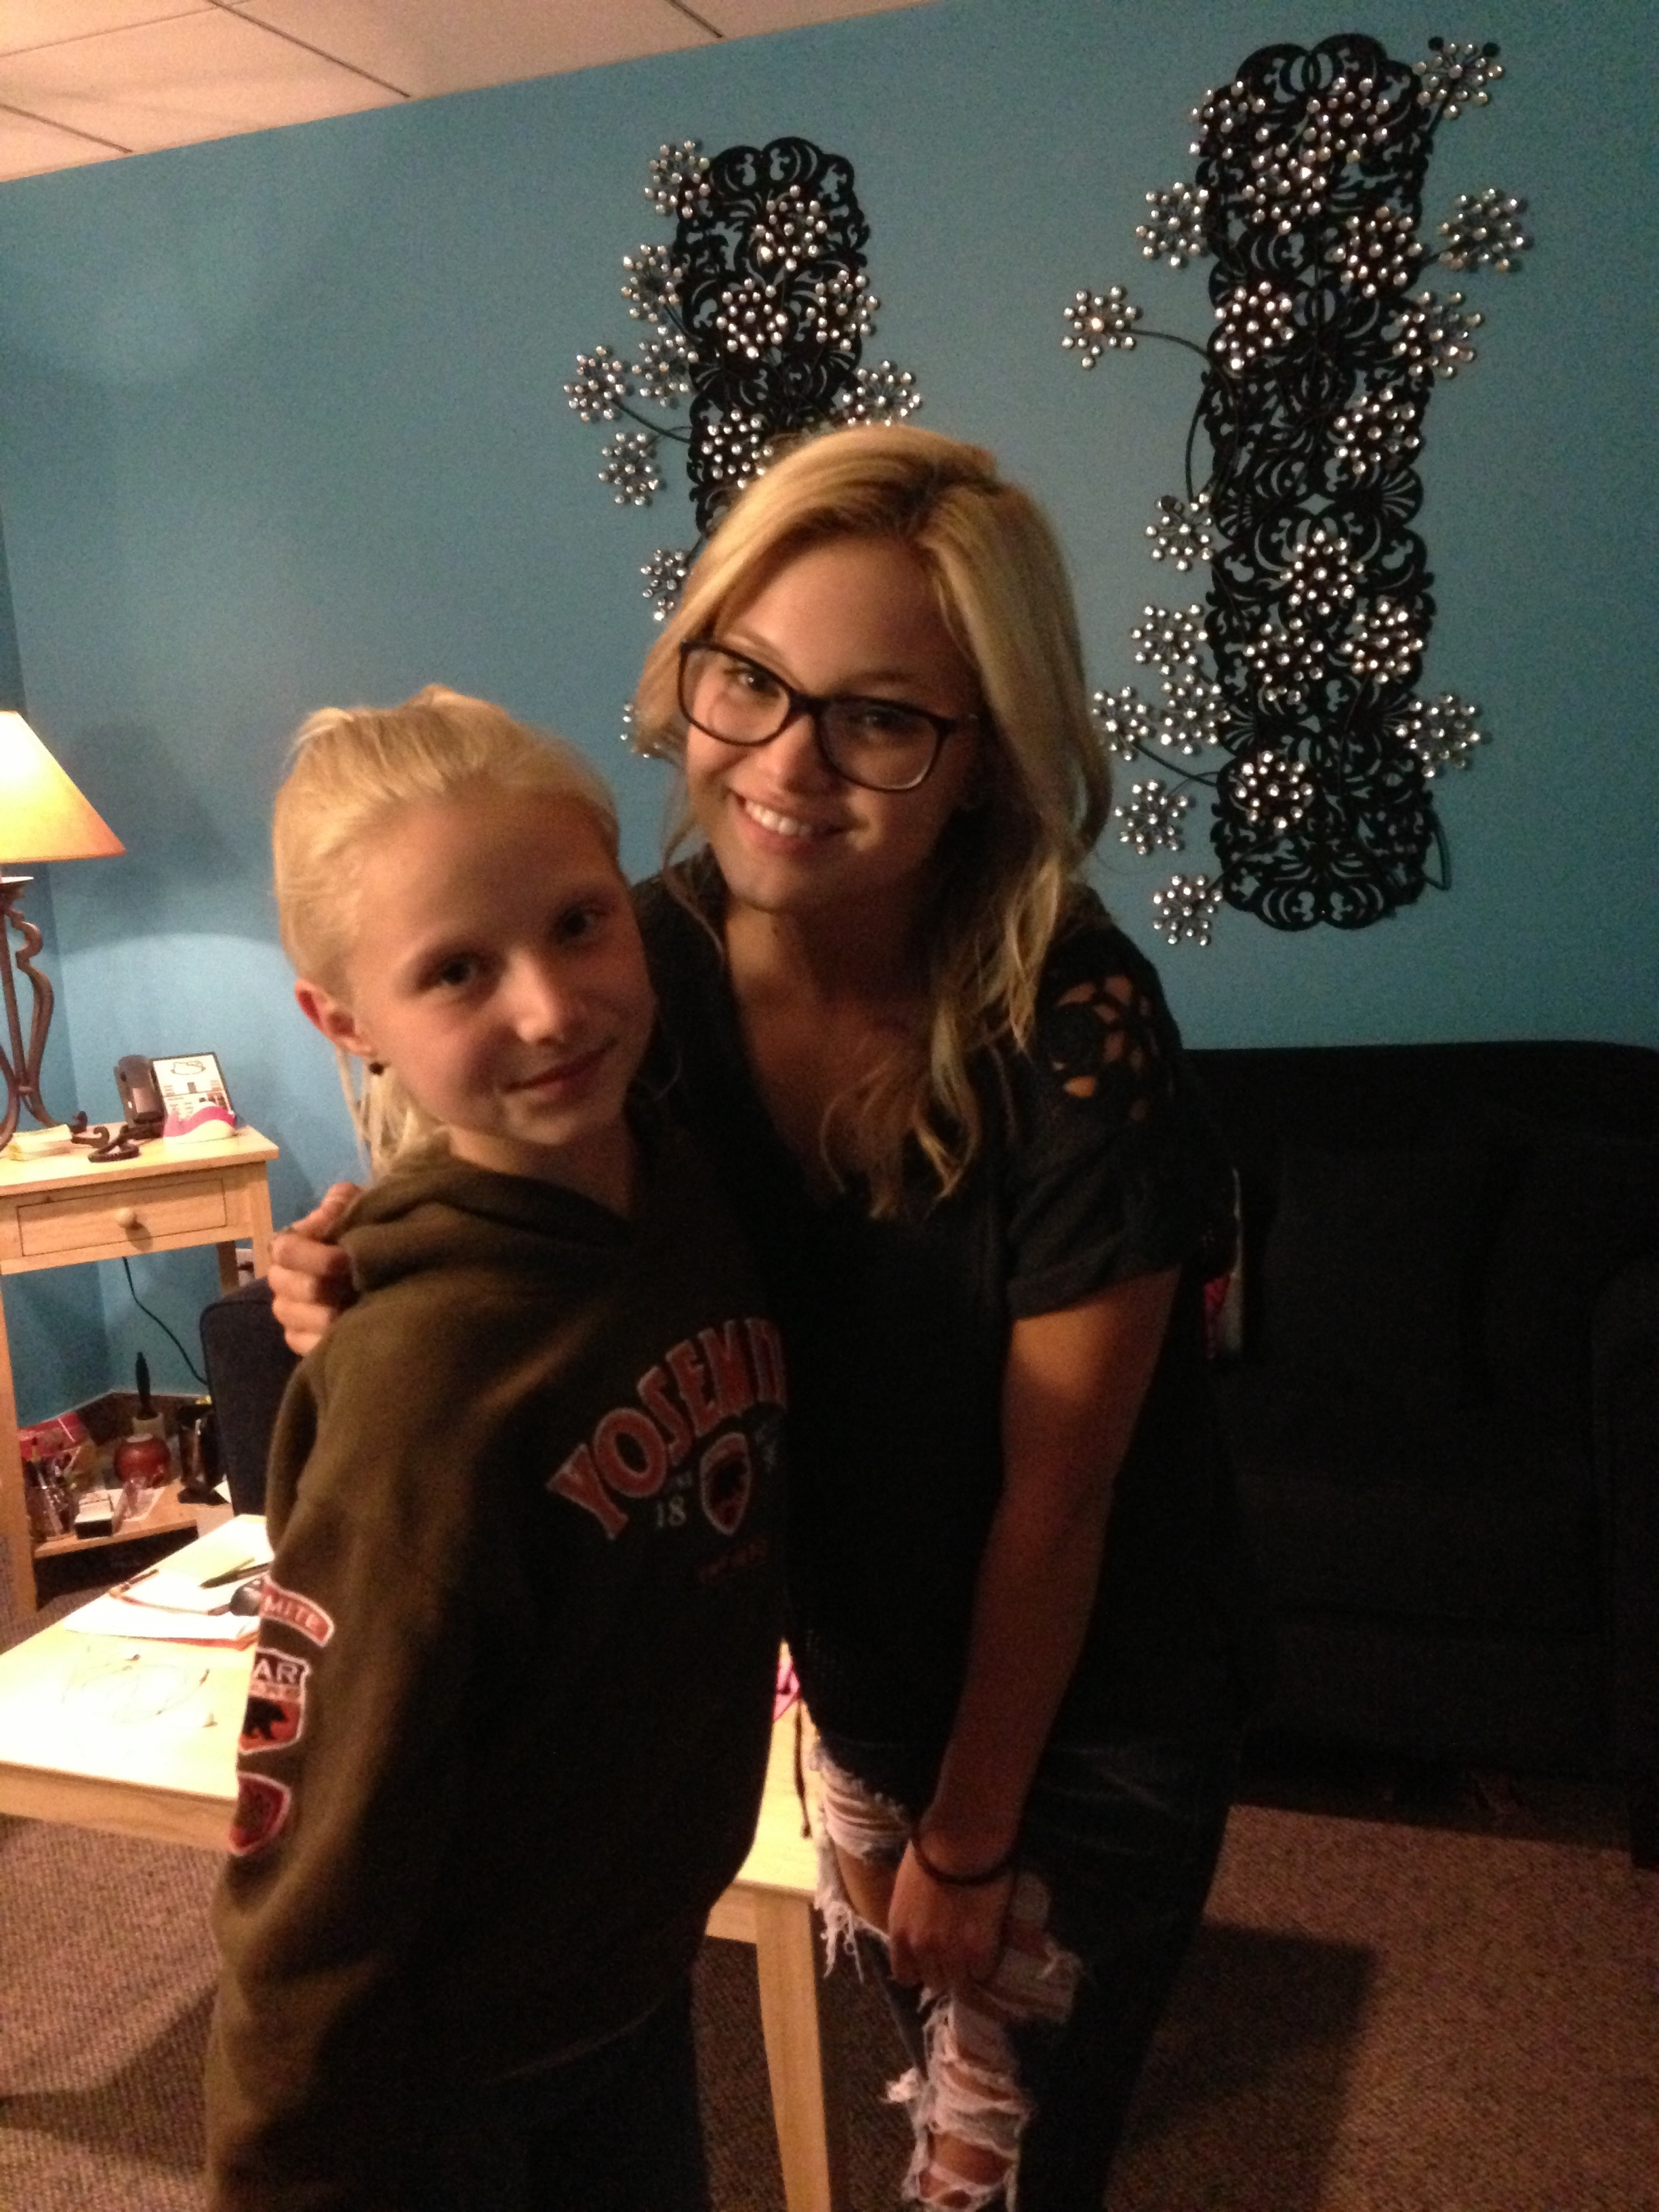 Meet olivia holt in chicago august 9 2013 reach for the stars 20130730 180108g m4hsunfo